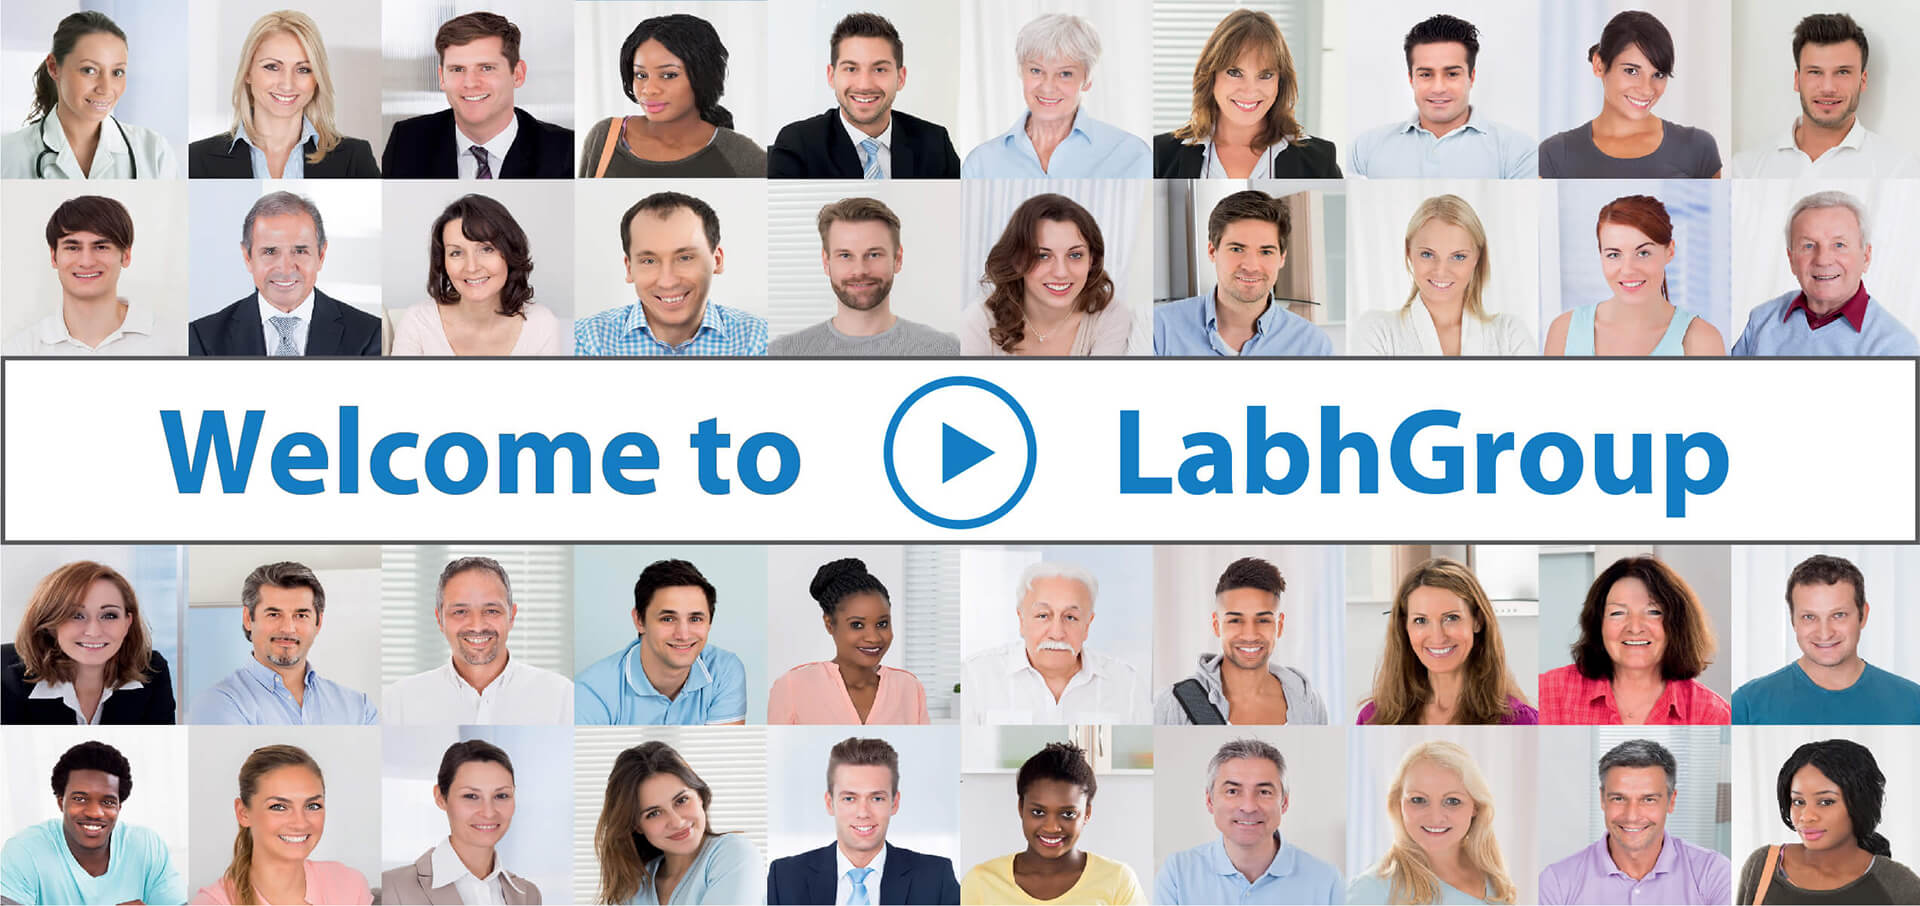 LabhGroup | Next Generation Turn-Key solutions to diverse industries